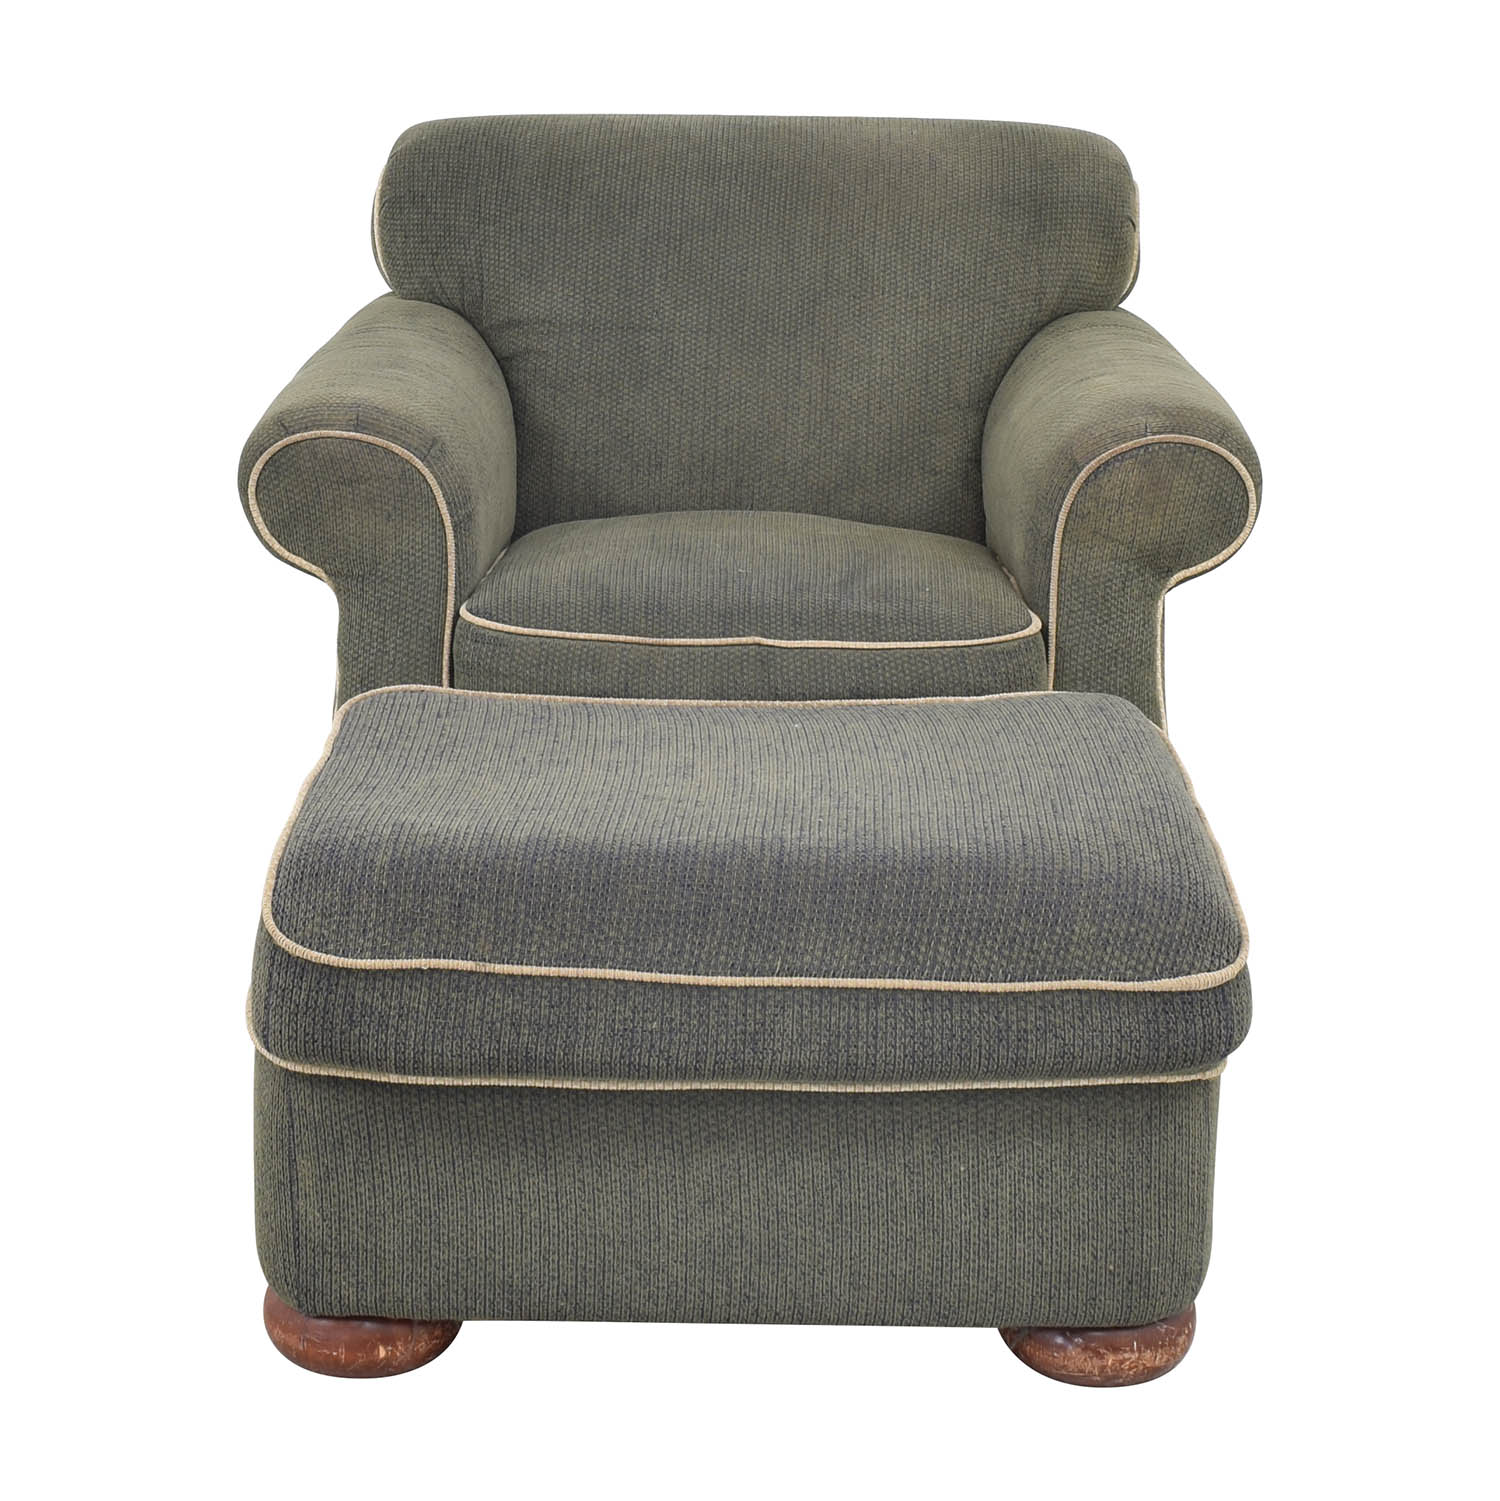 La-Z-Boy La-Z-Boy Rolled Arm Accent Chair with Ottoman ct